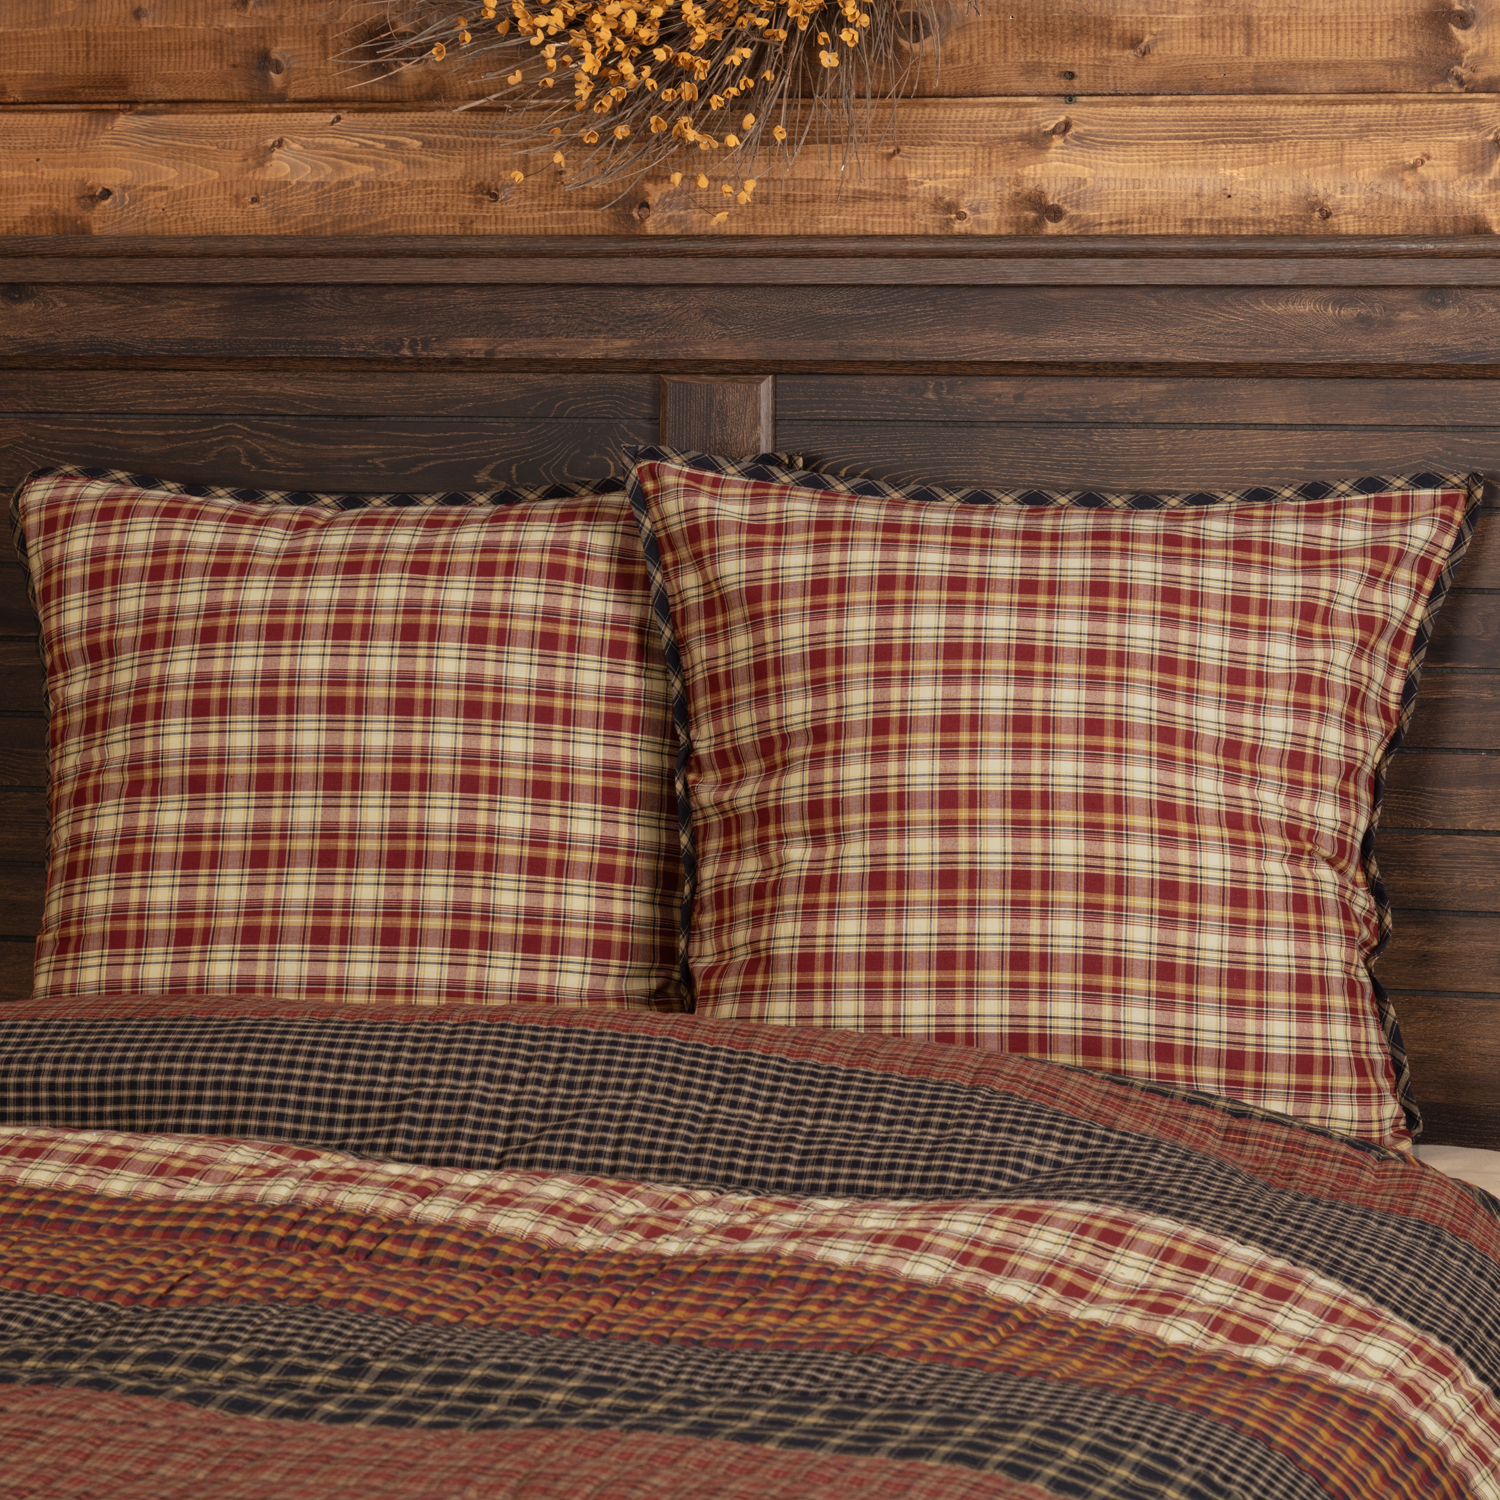 Rust Red Rustic & Lodge Bedding Beckham Cotton Plaid Euro Sham